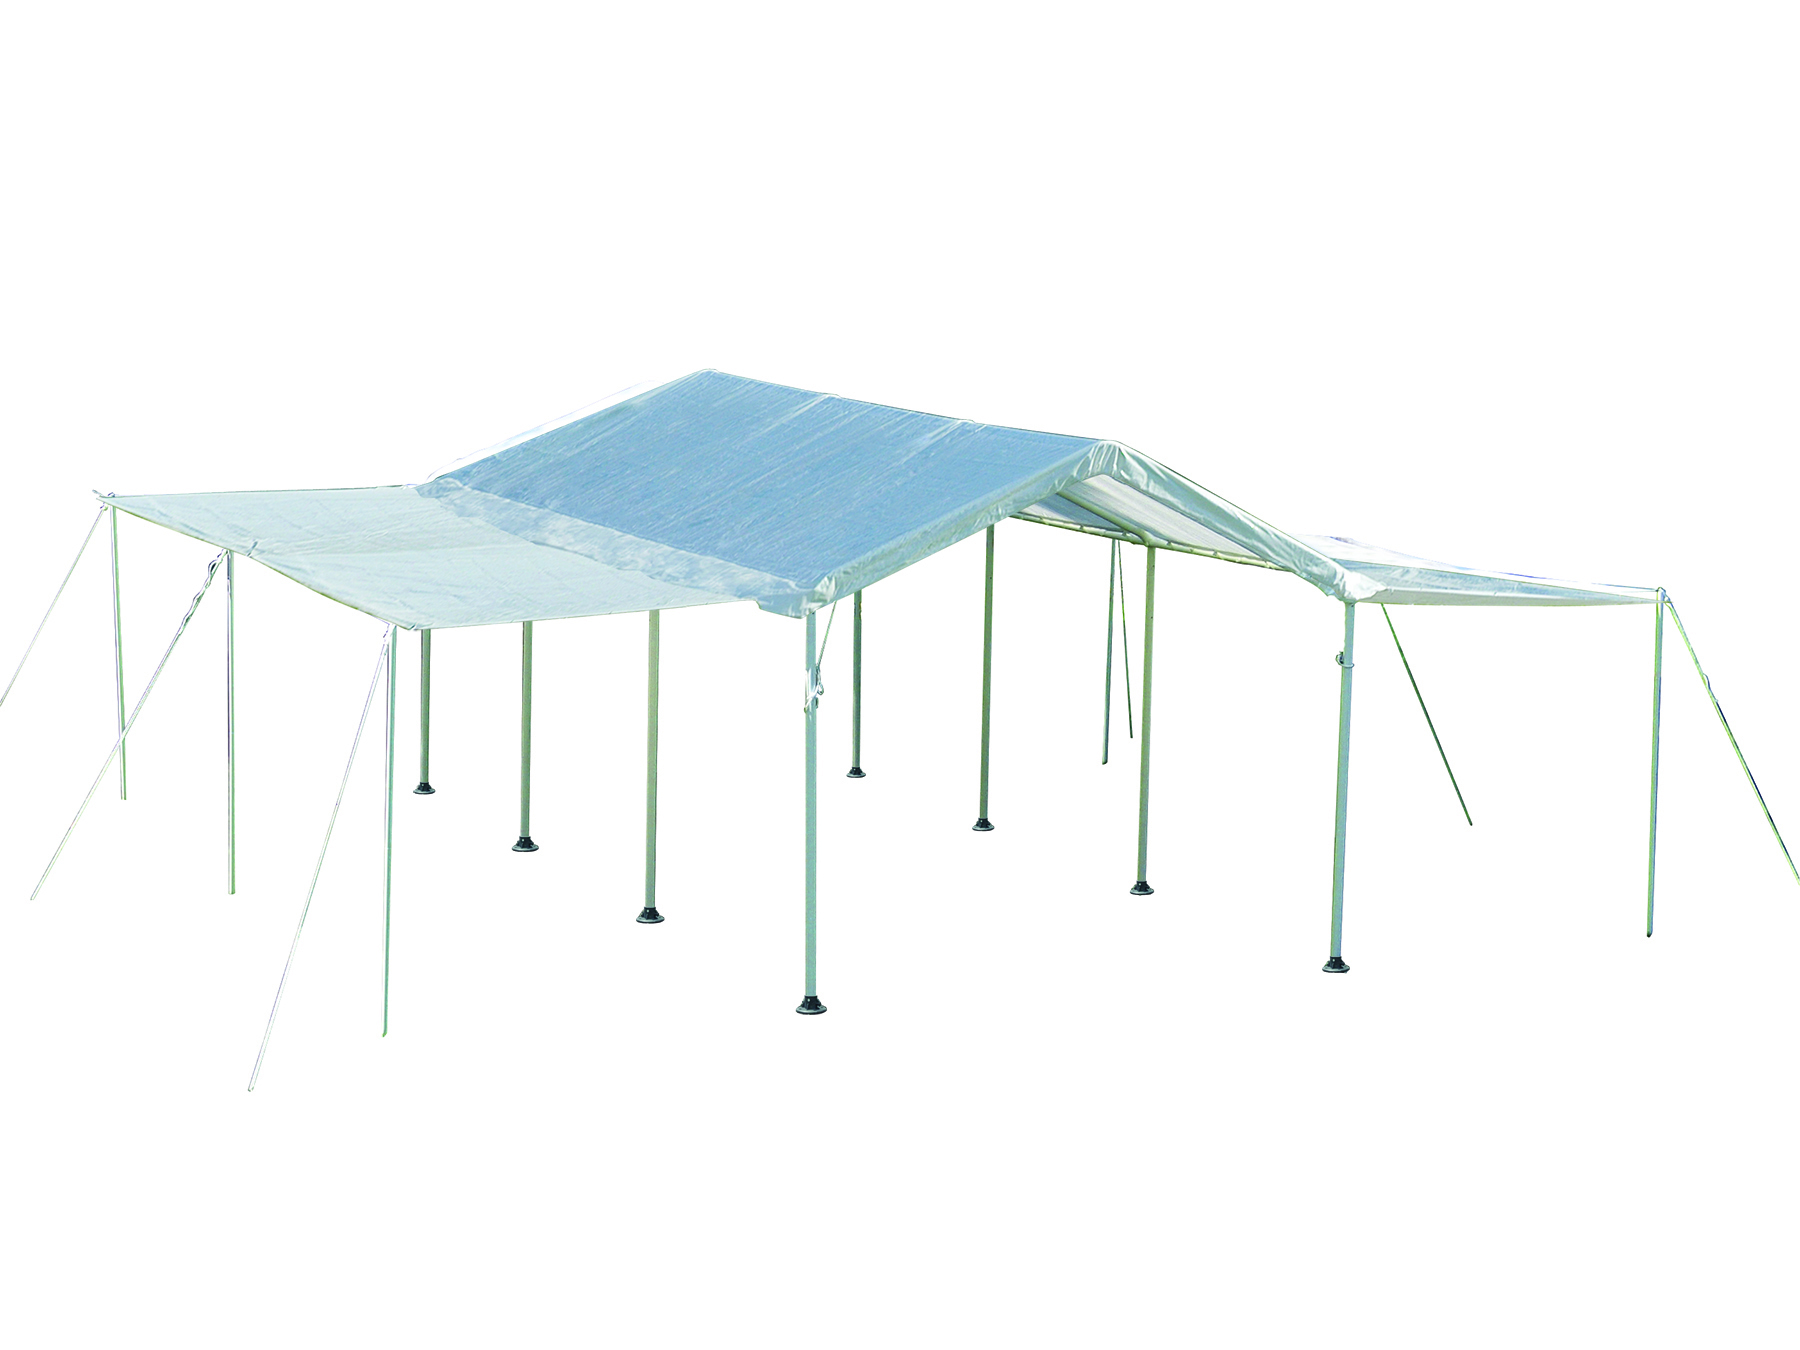 Max AP 10 ft. x 20 ft. White Canopy Extension Kit - Frame and Canopy Sold Separately